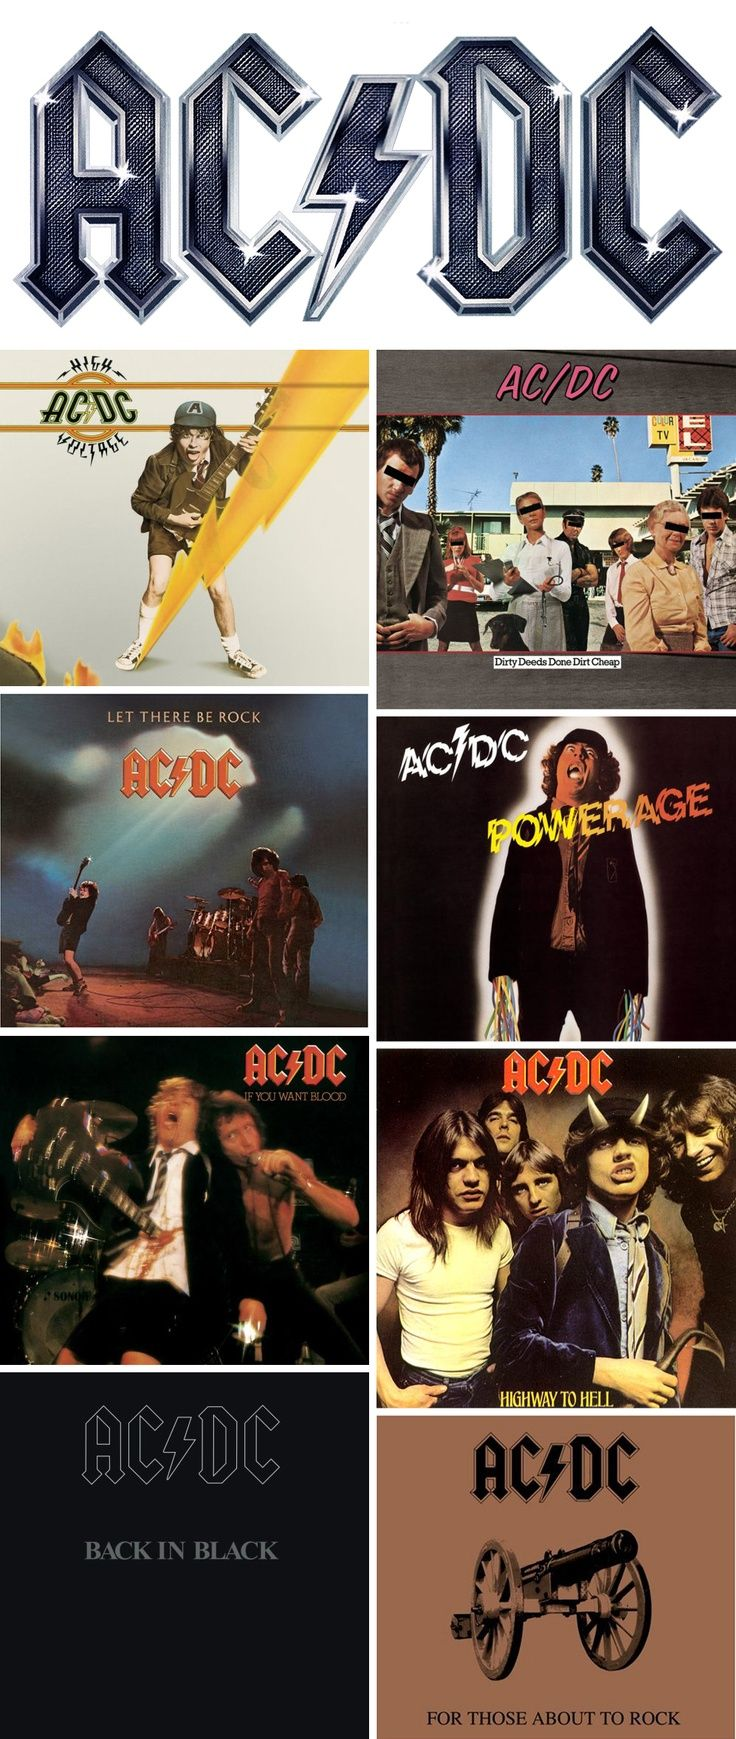 #ACDC AC/DC Home | The Official AC/DC Site - http://sound.saar.city/?p=14843